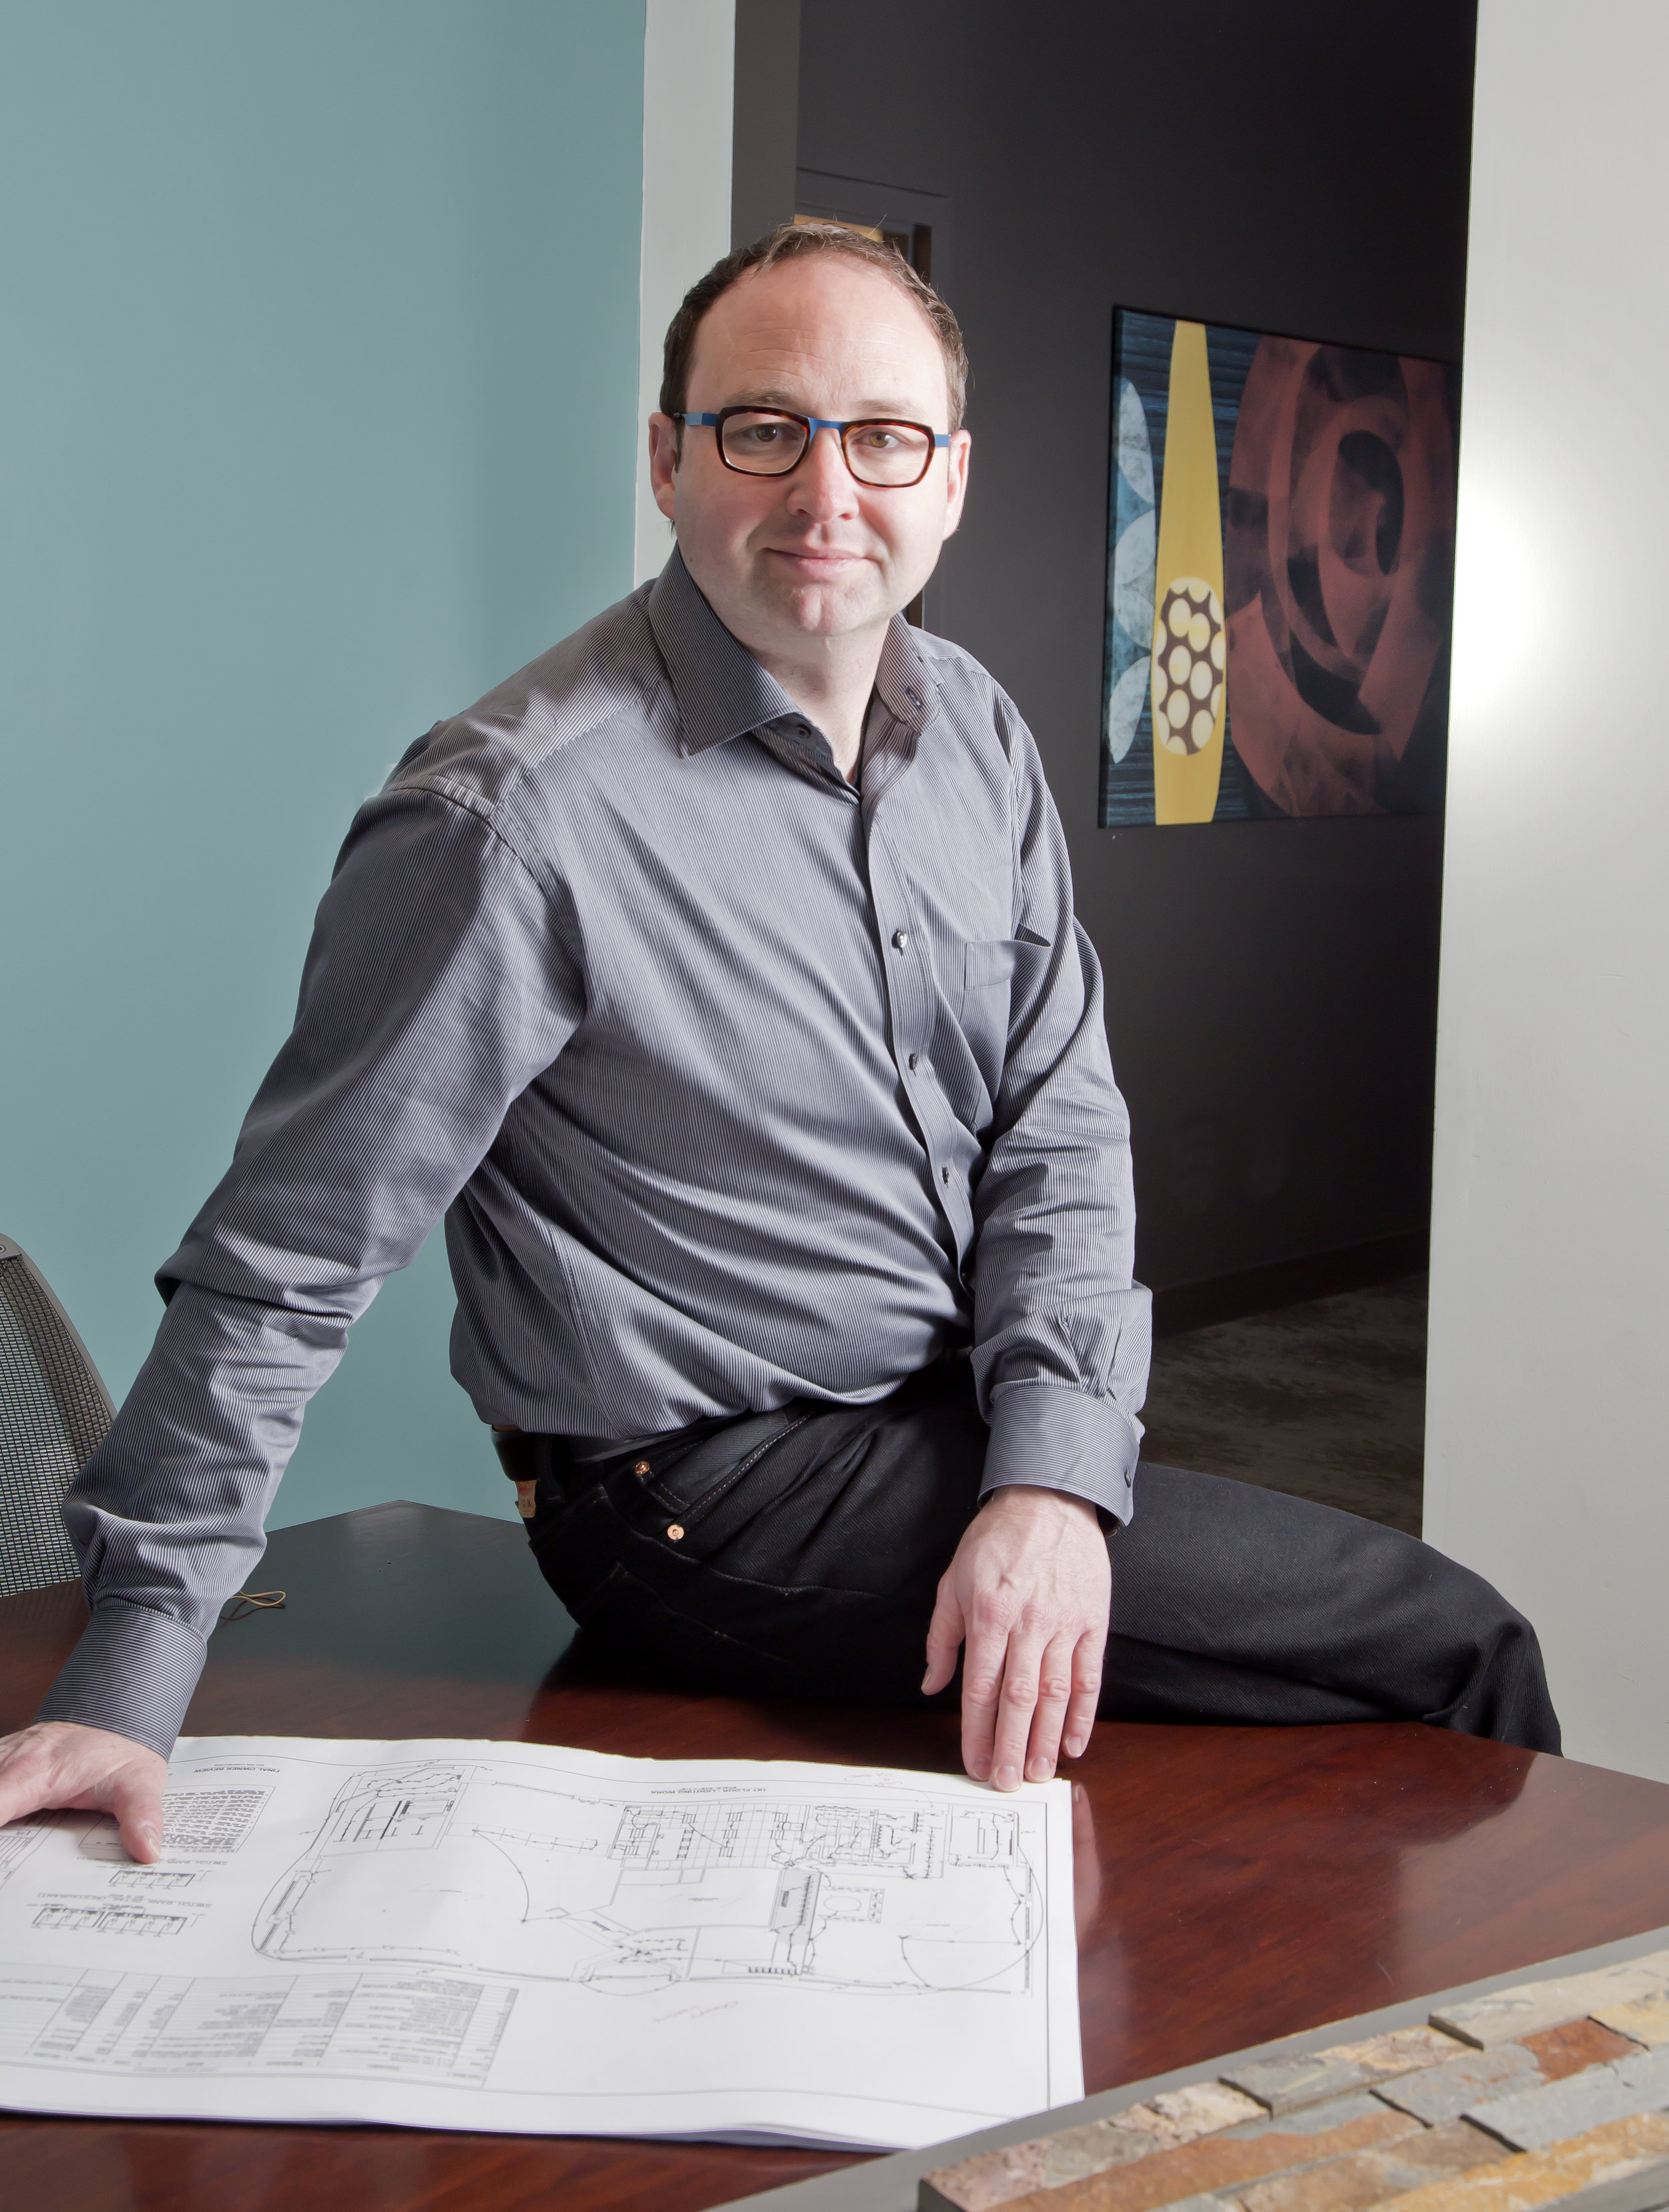 One of our architects, Michael Schornack.